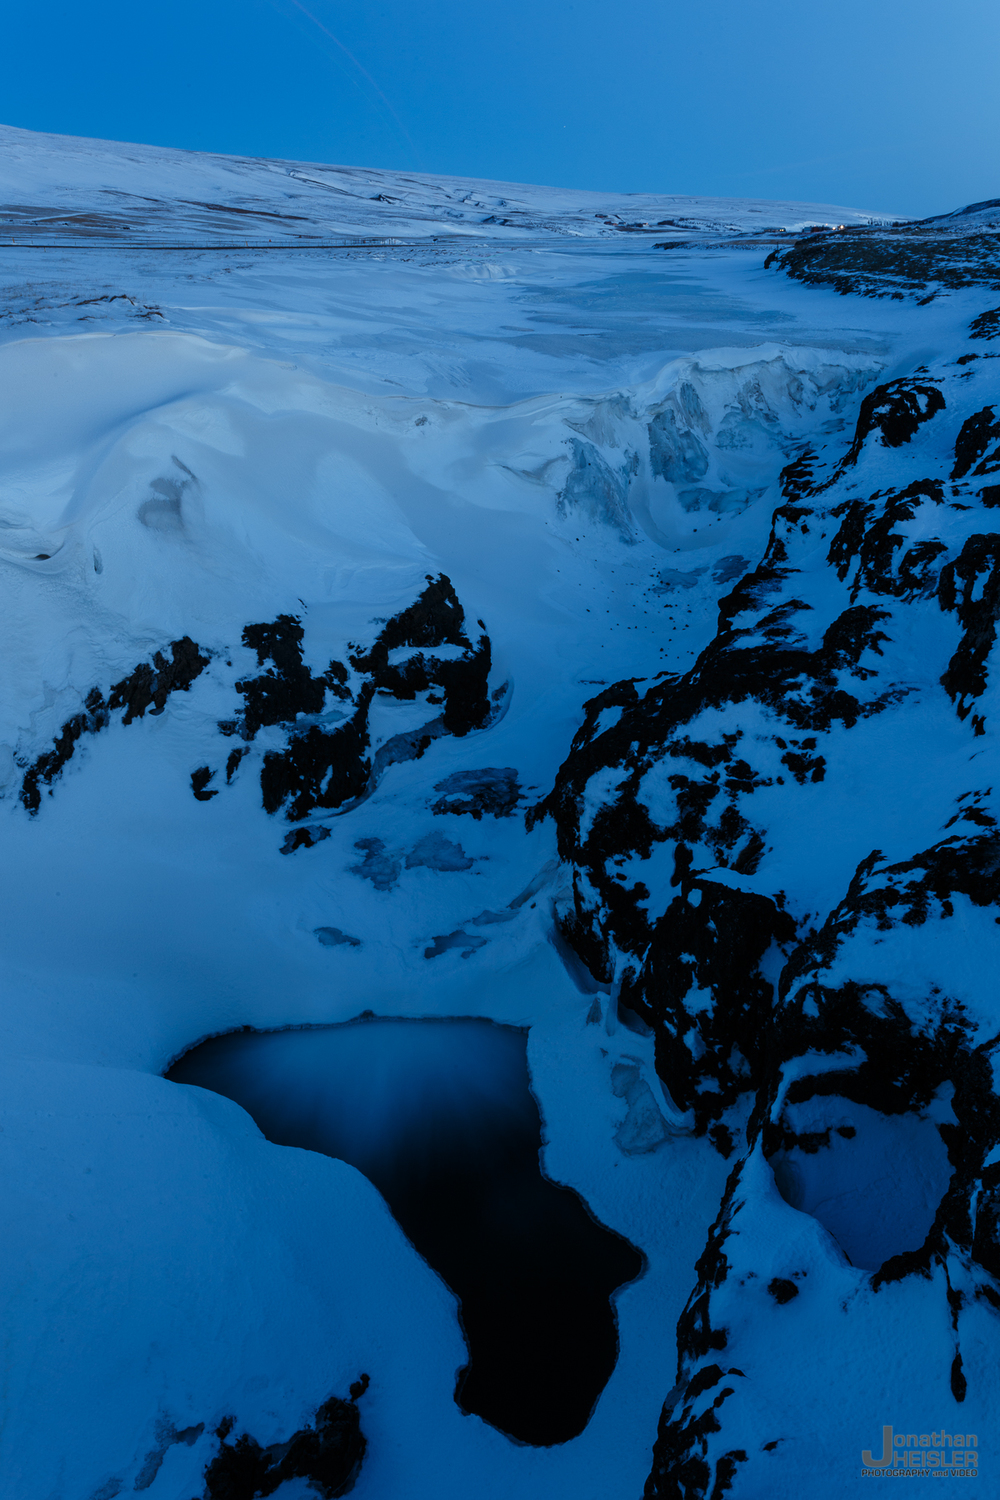 Iceland Winter Photos_  Jonathan Heisler __  02292016 _ 059.jpg